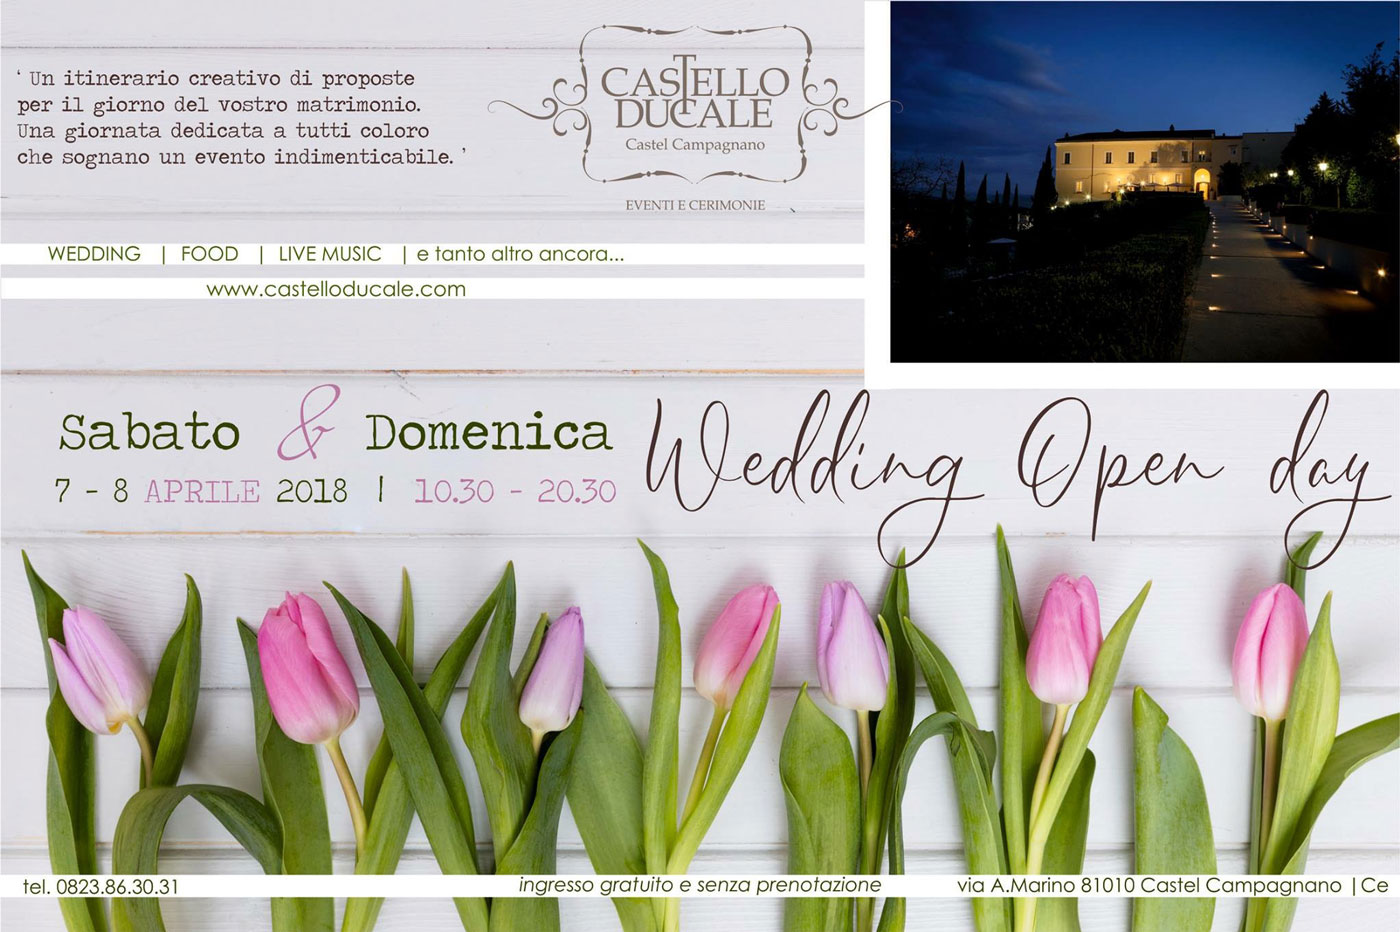 Matrimonio 2018: Wedding Open Day di Castello Ducale Castel Campagnano 7-8 aprile 2018